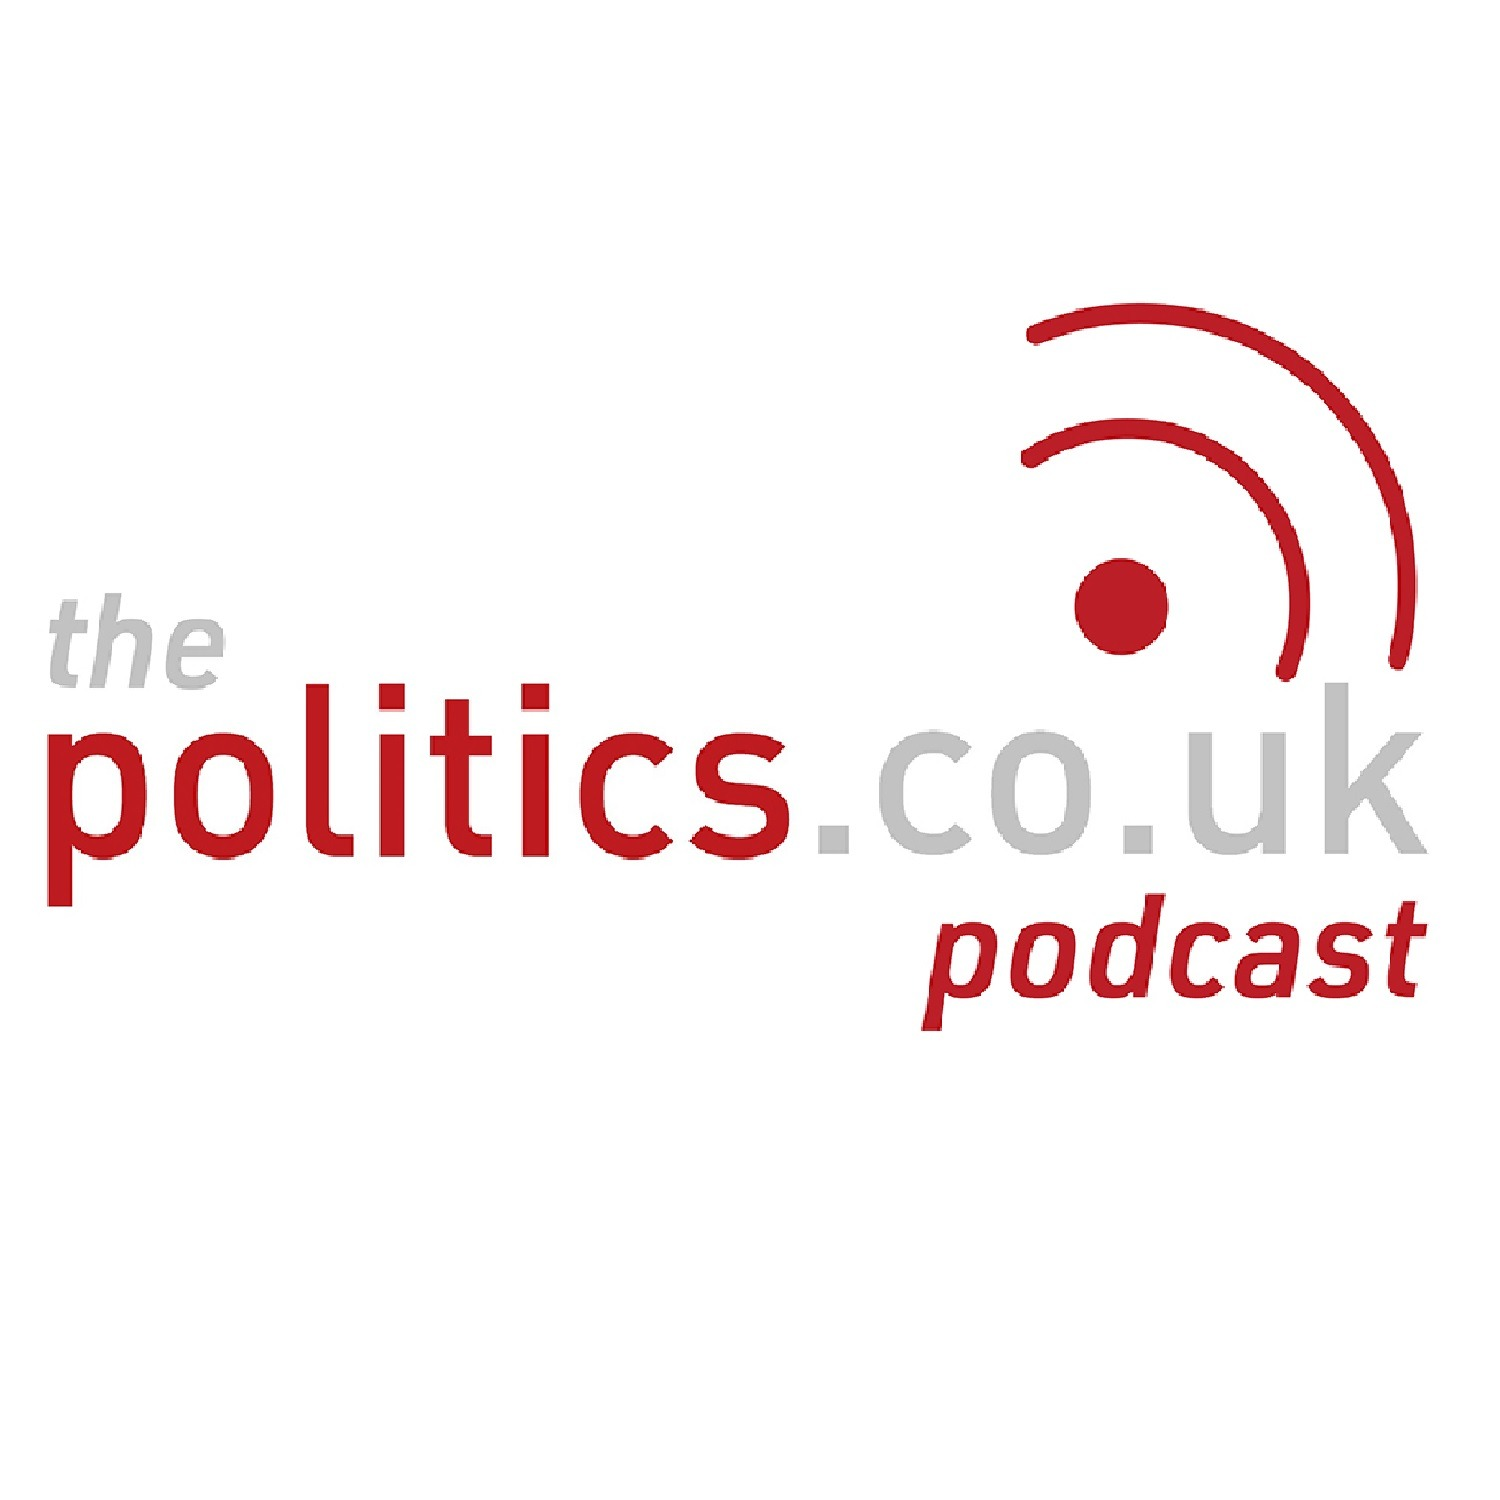 The Politics.co.uk Podcast - Russian infowars